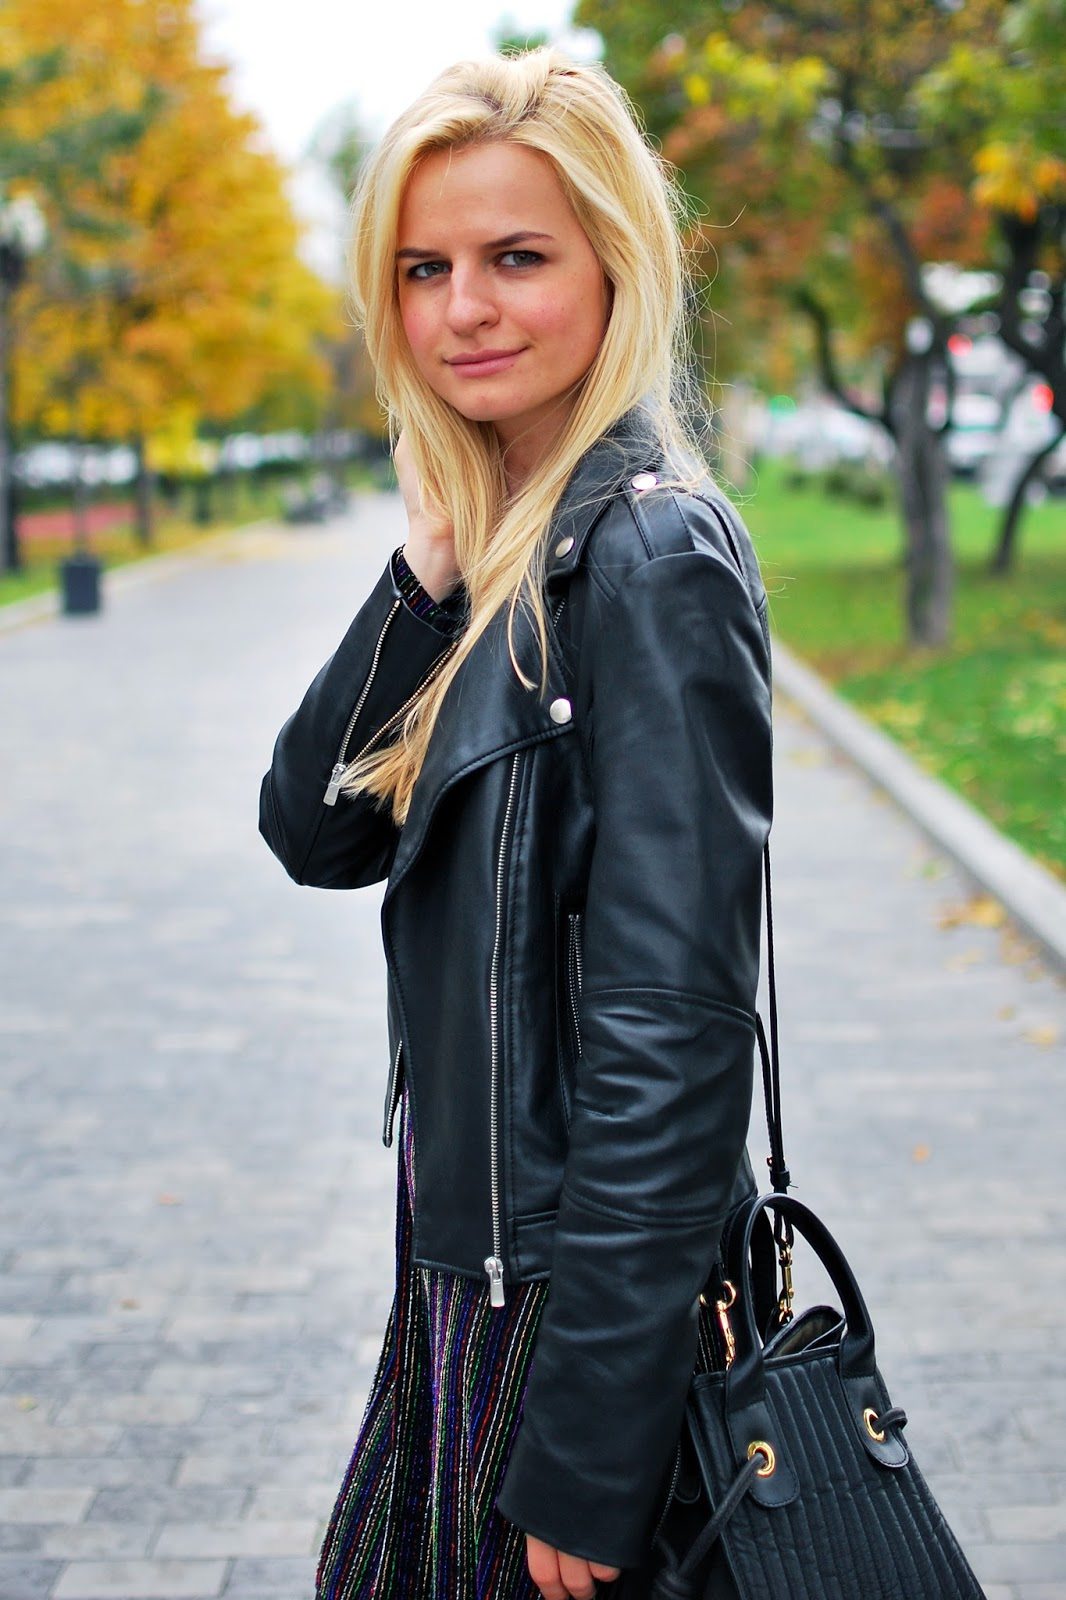 best blond hues, outfit ideas, what to wear with leather jacket, street style autumn